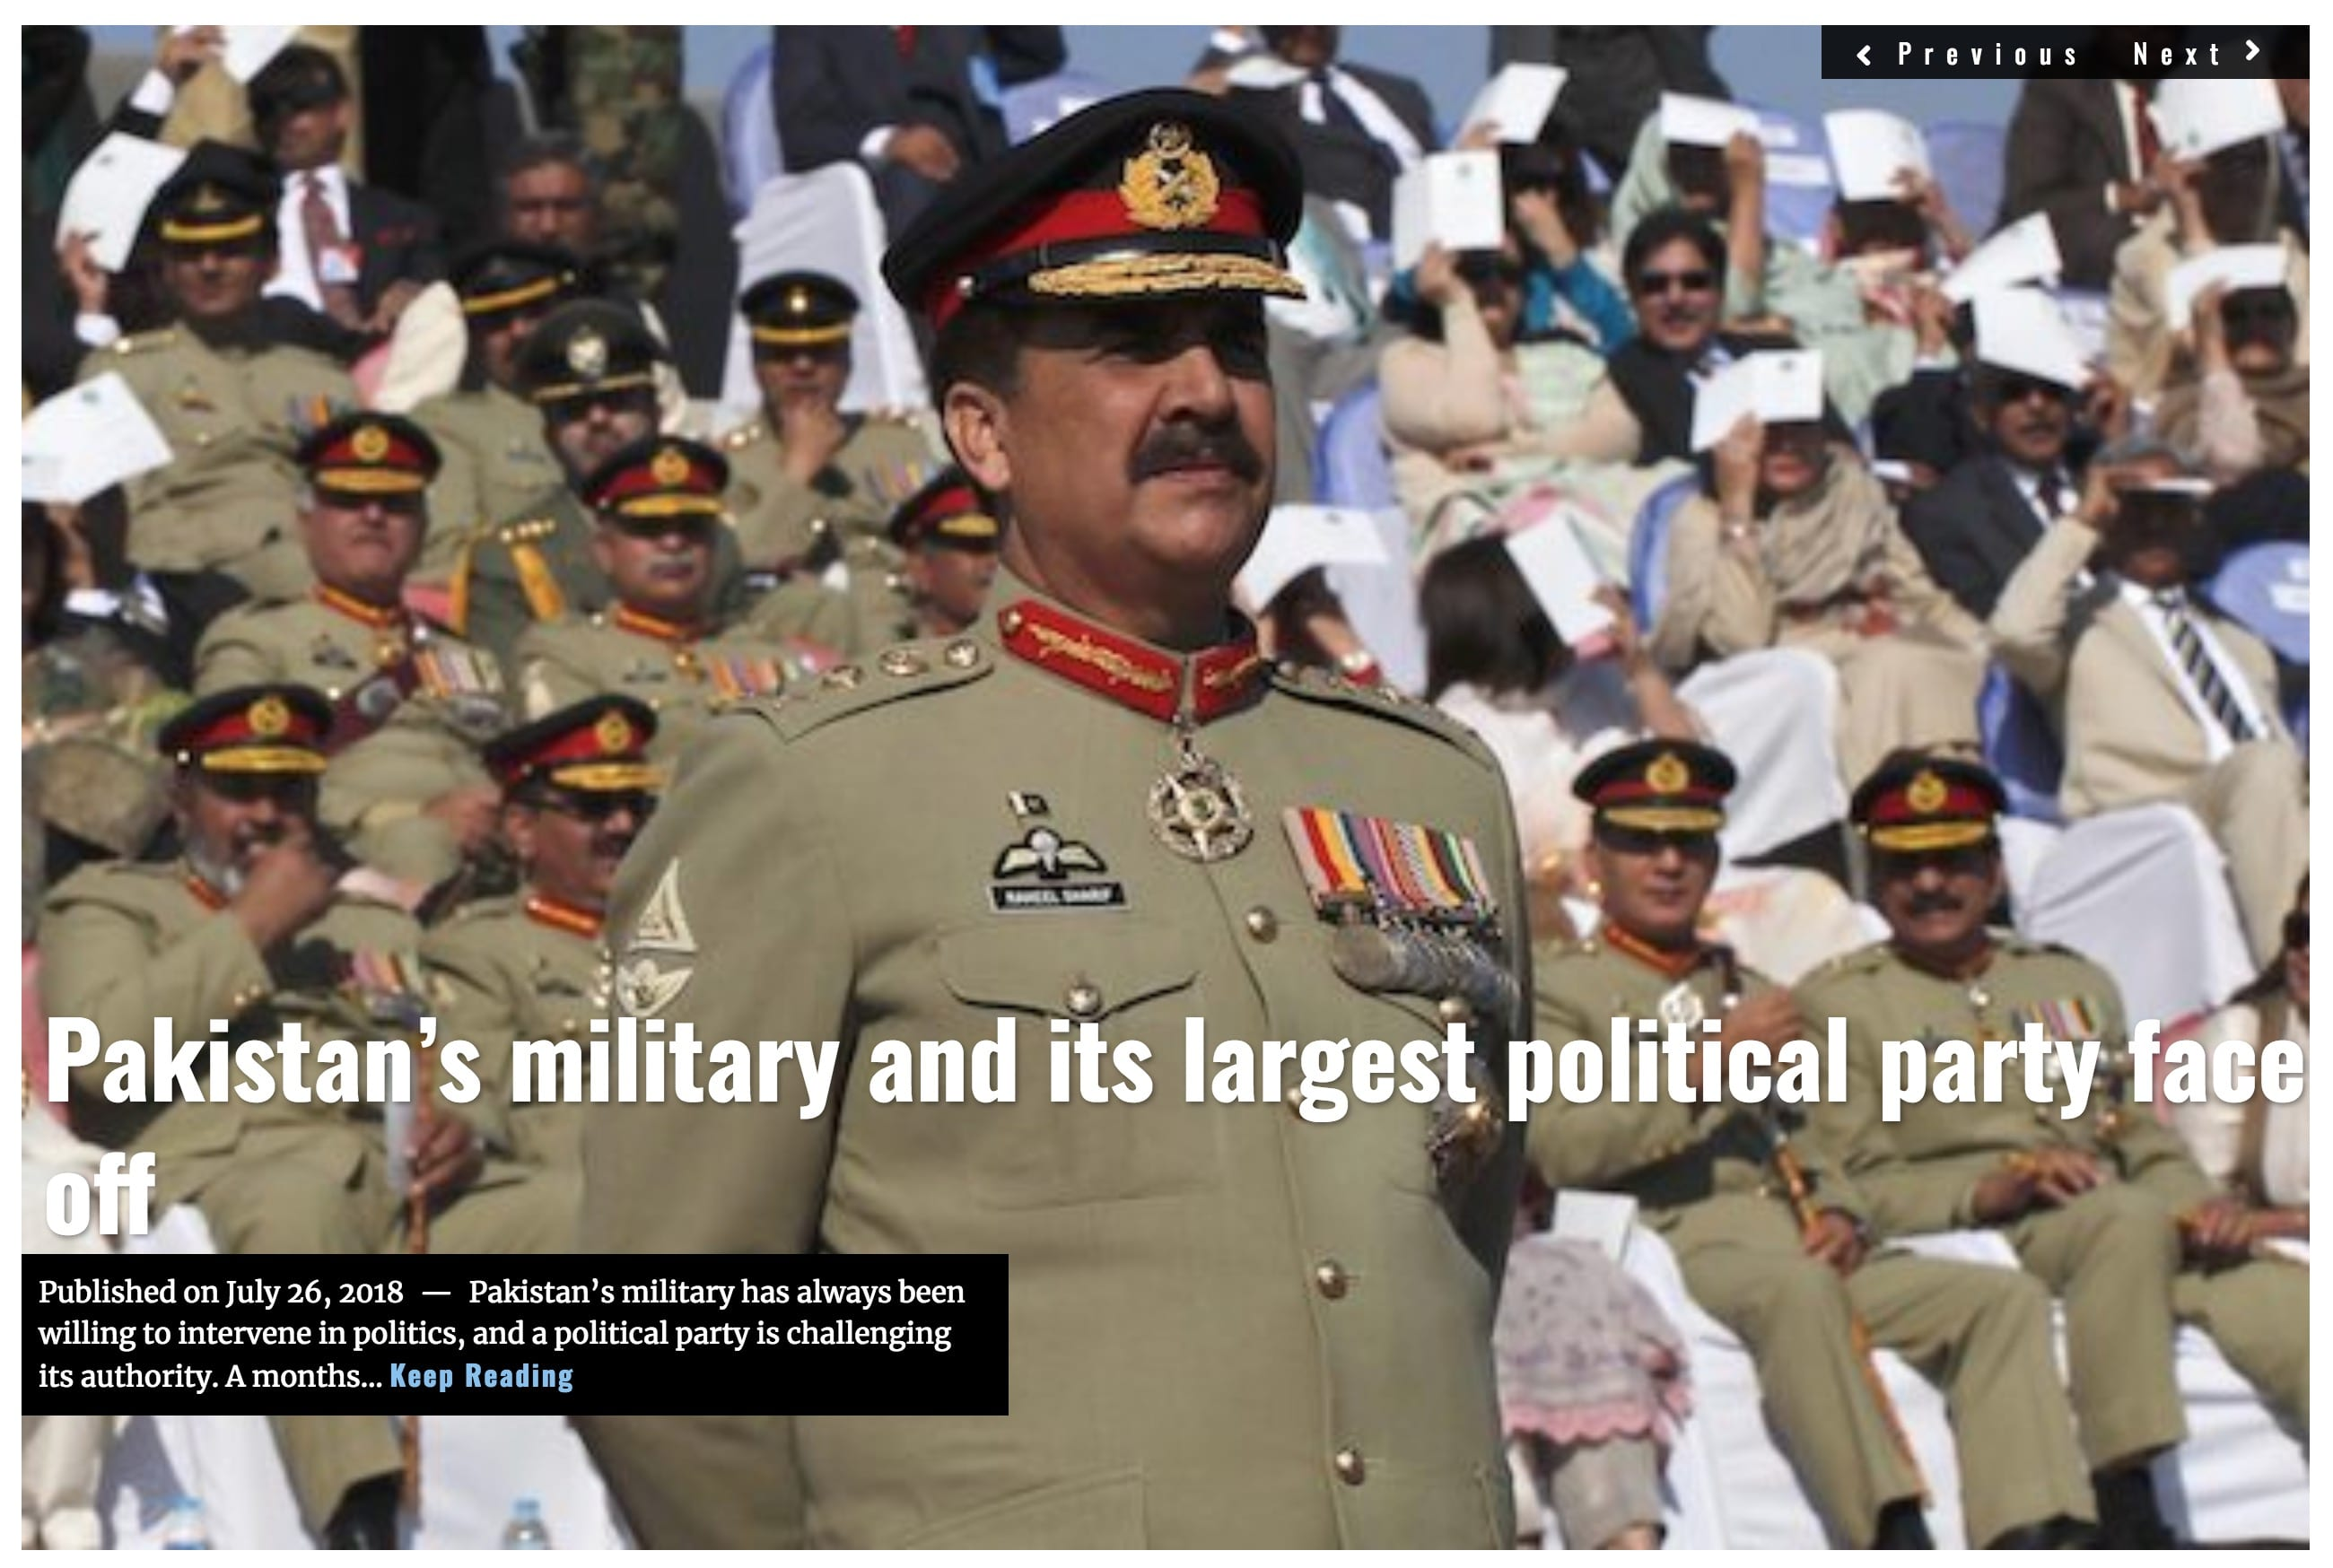 Image Lima Charlie News Headline Pakistan military JUL 26 2018 (1)